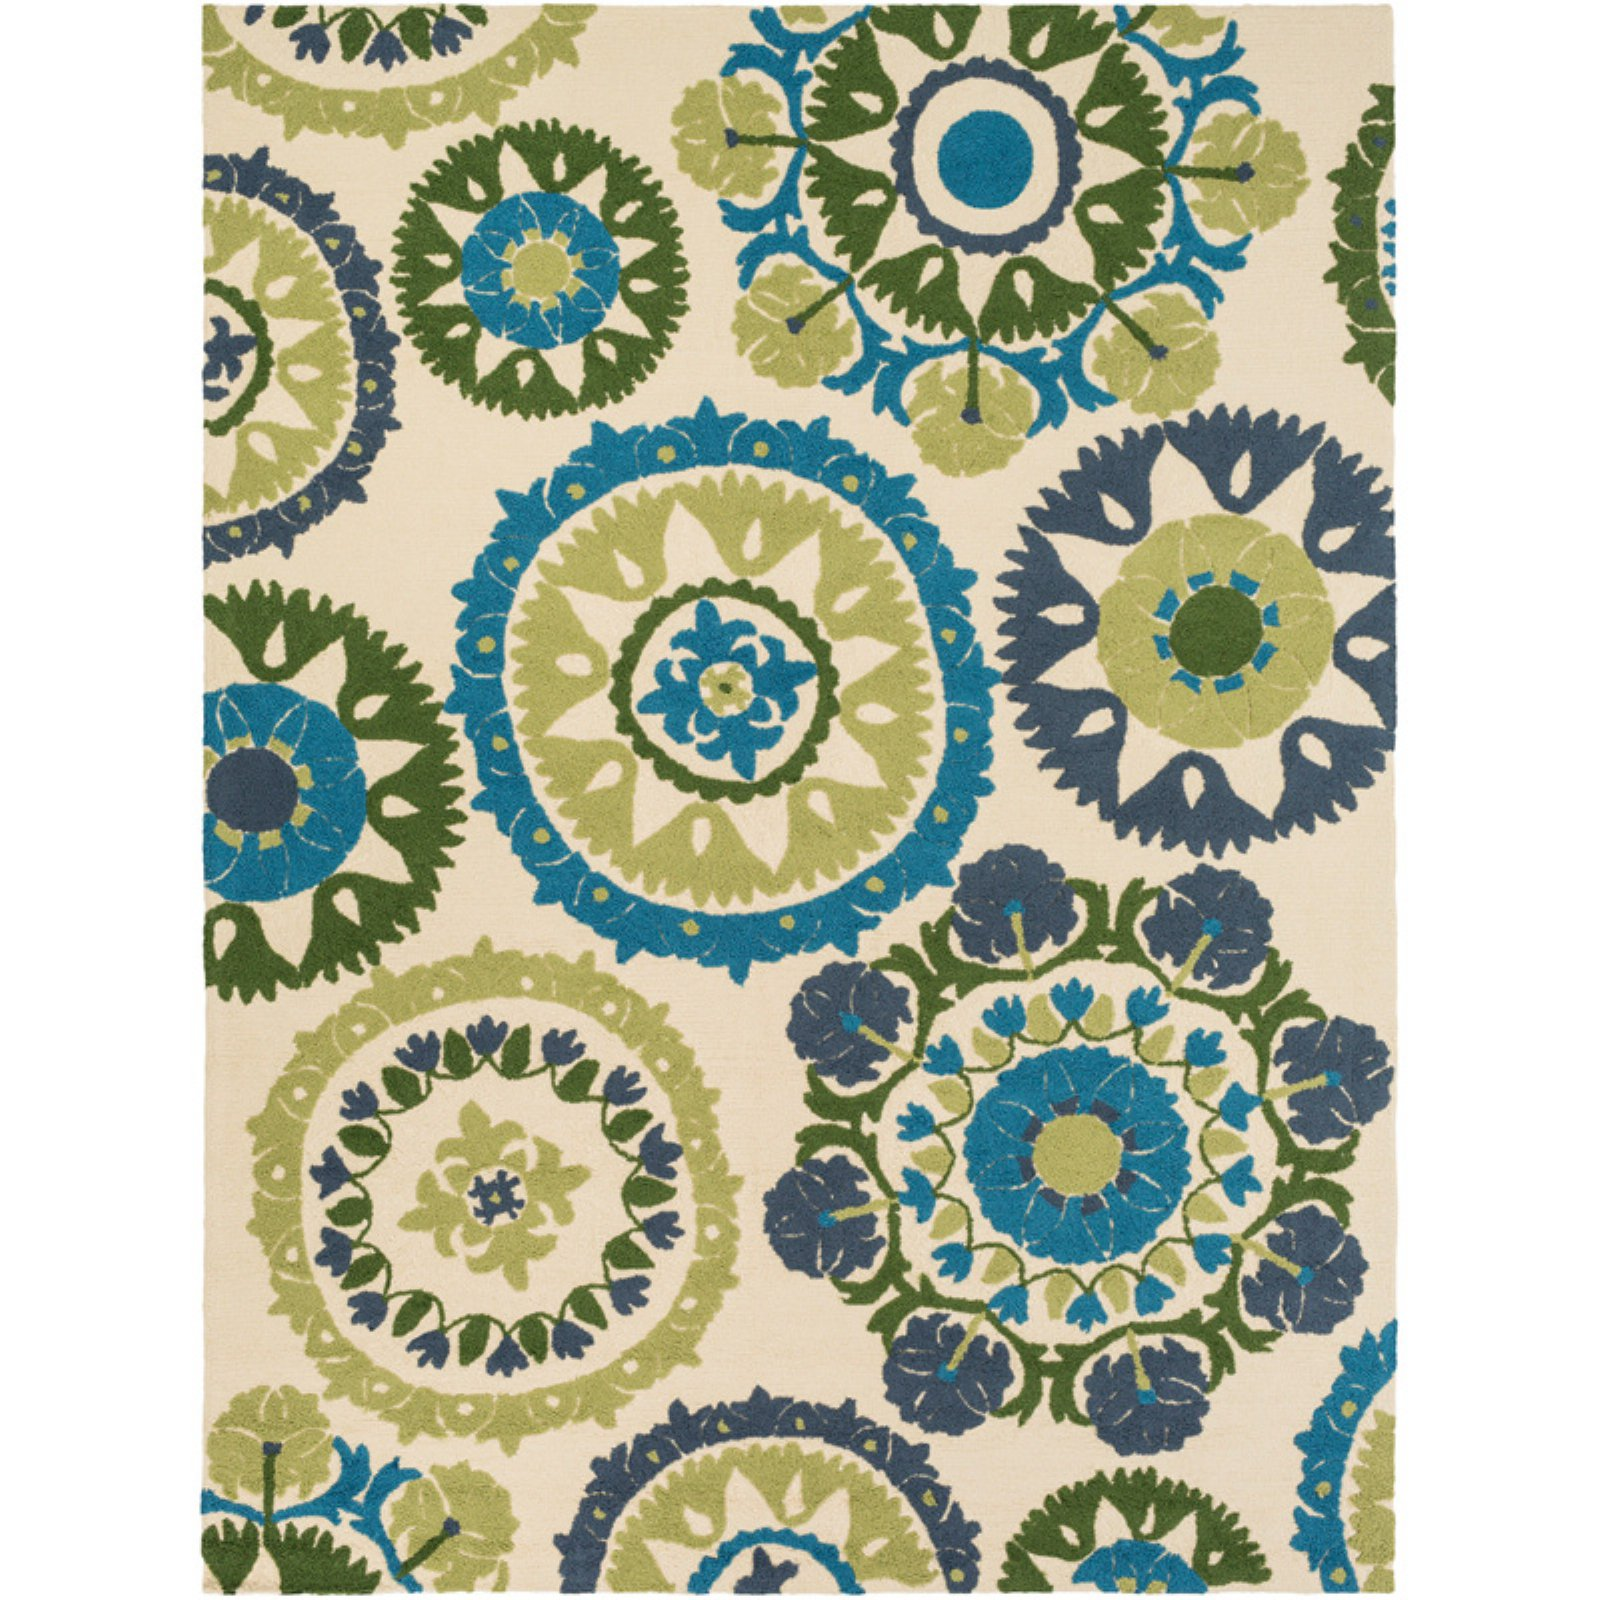 Surya Storm SOM776 Indoor / Outdoor Area Rug